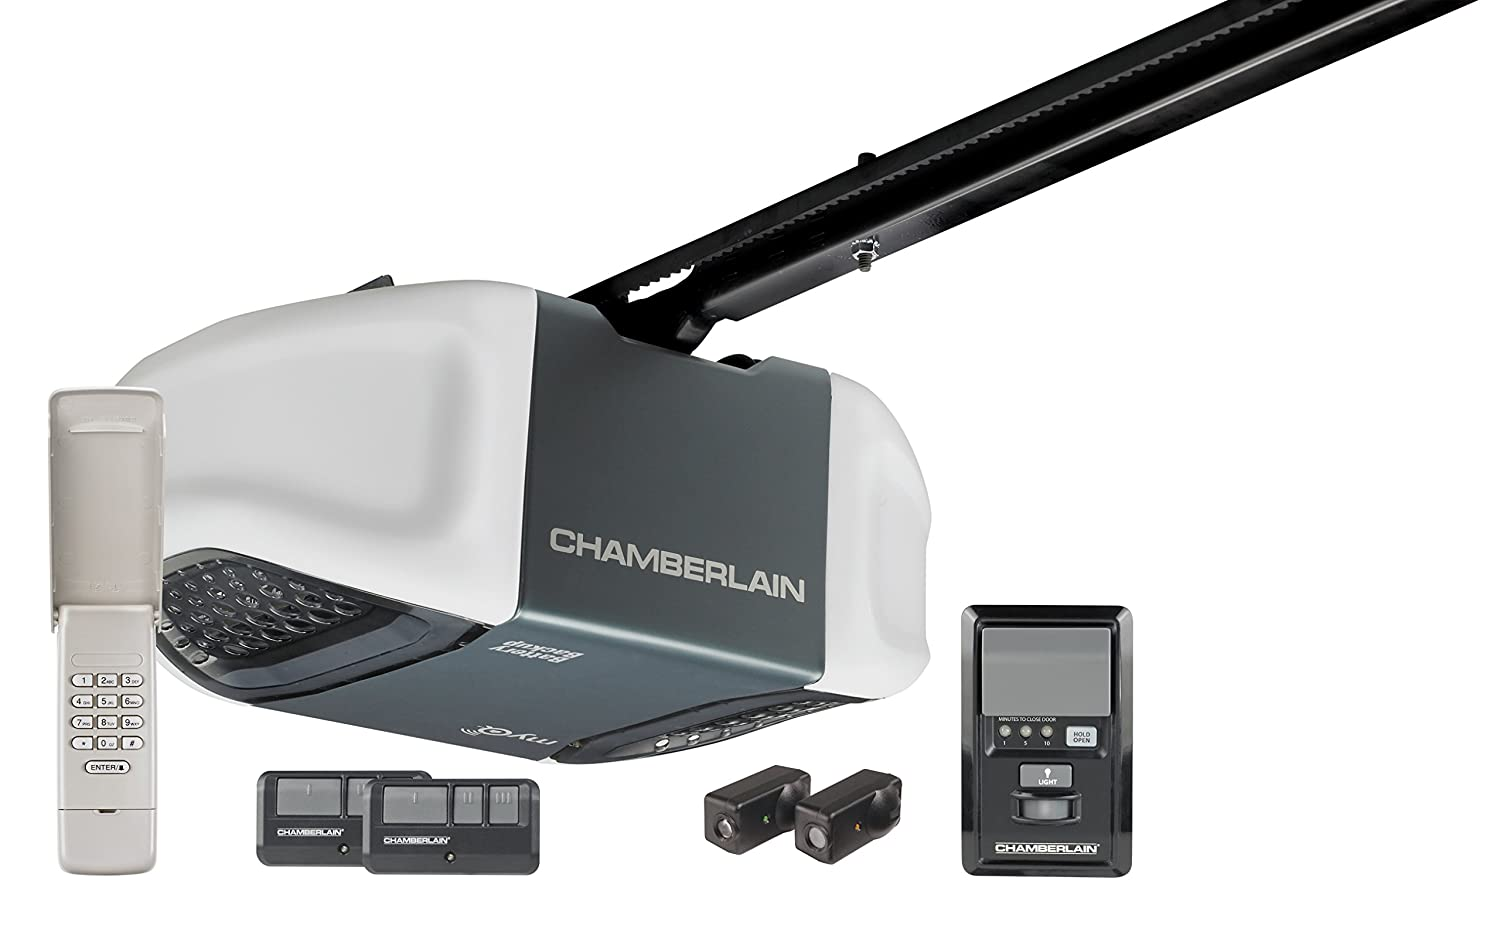 Chamberlain WD962KEV Whisper Drive Garage Door Opener with MyQ Technology, Top Garage Door Opener